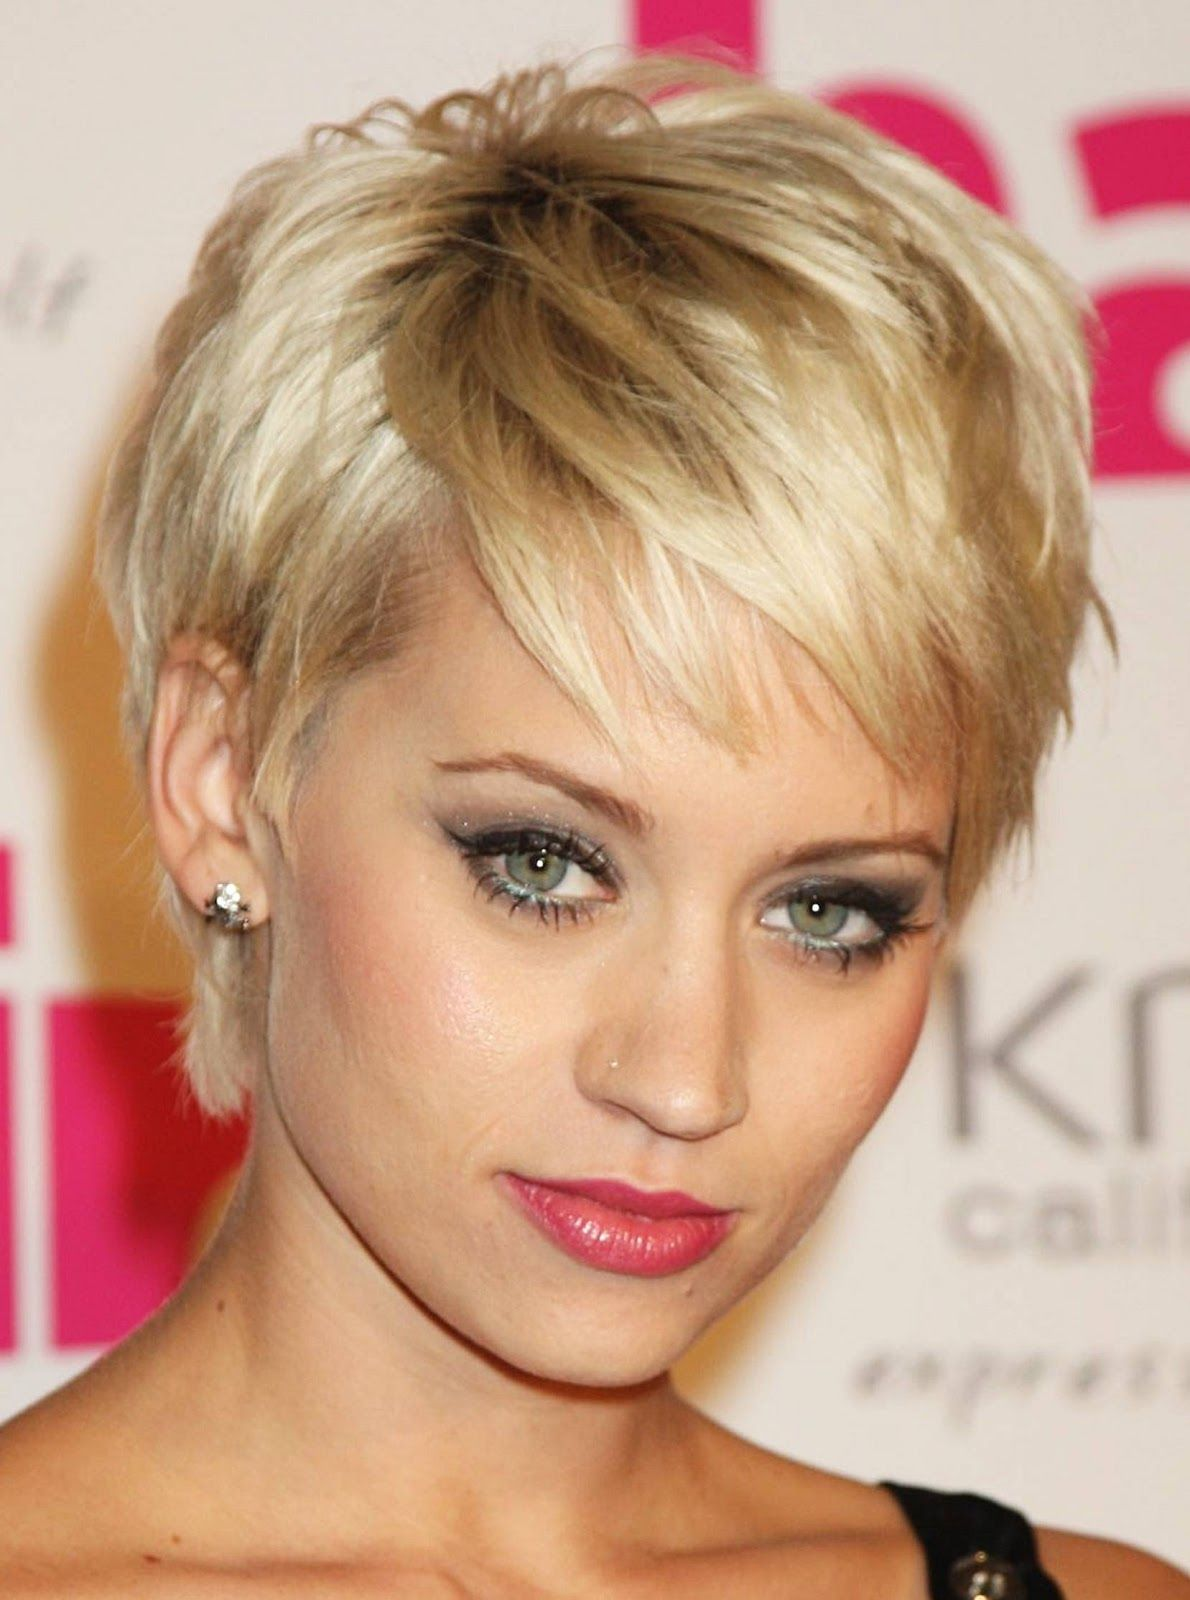 Trendy For Short Hairstyles Short Hairstyles For Women Haircut For Thick Hair Haircuts For Fine Hair Oval Face Hairstyles